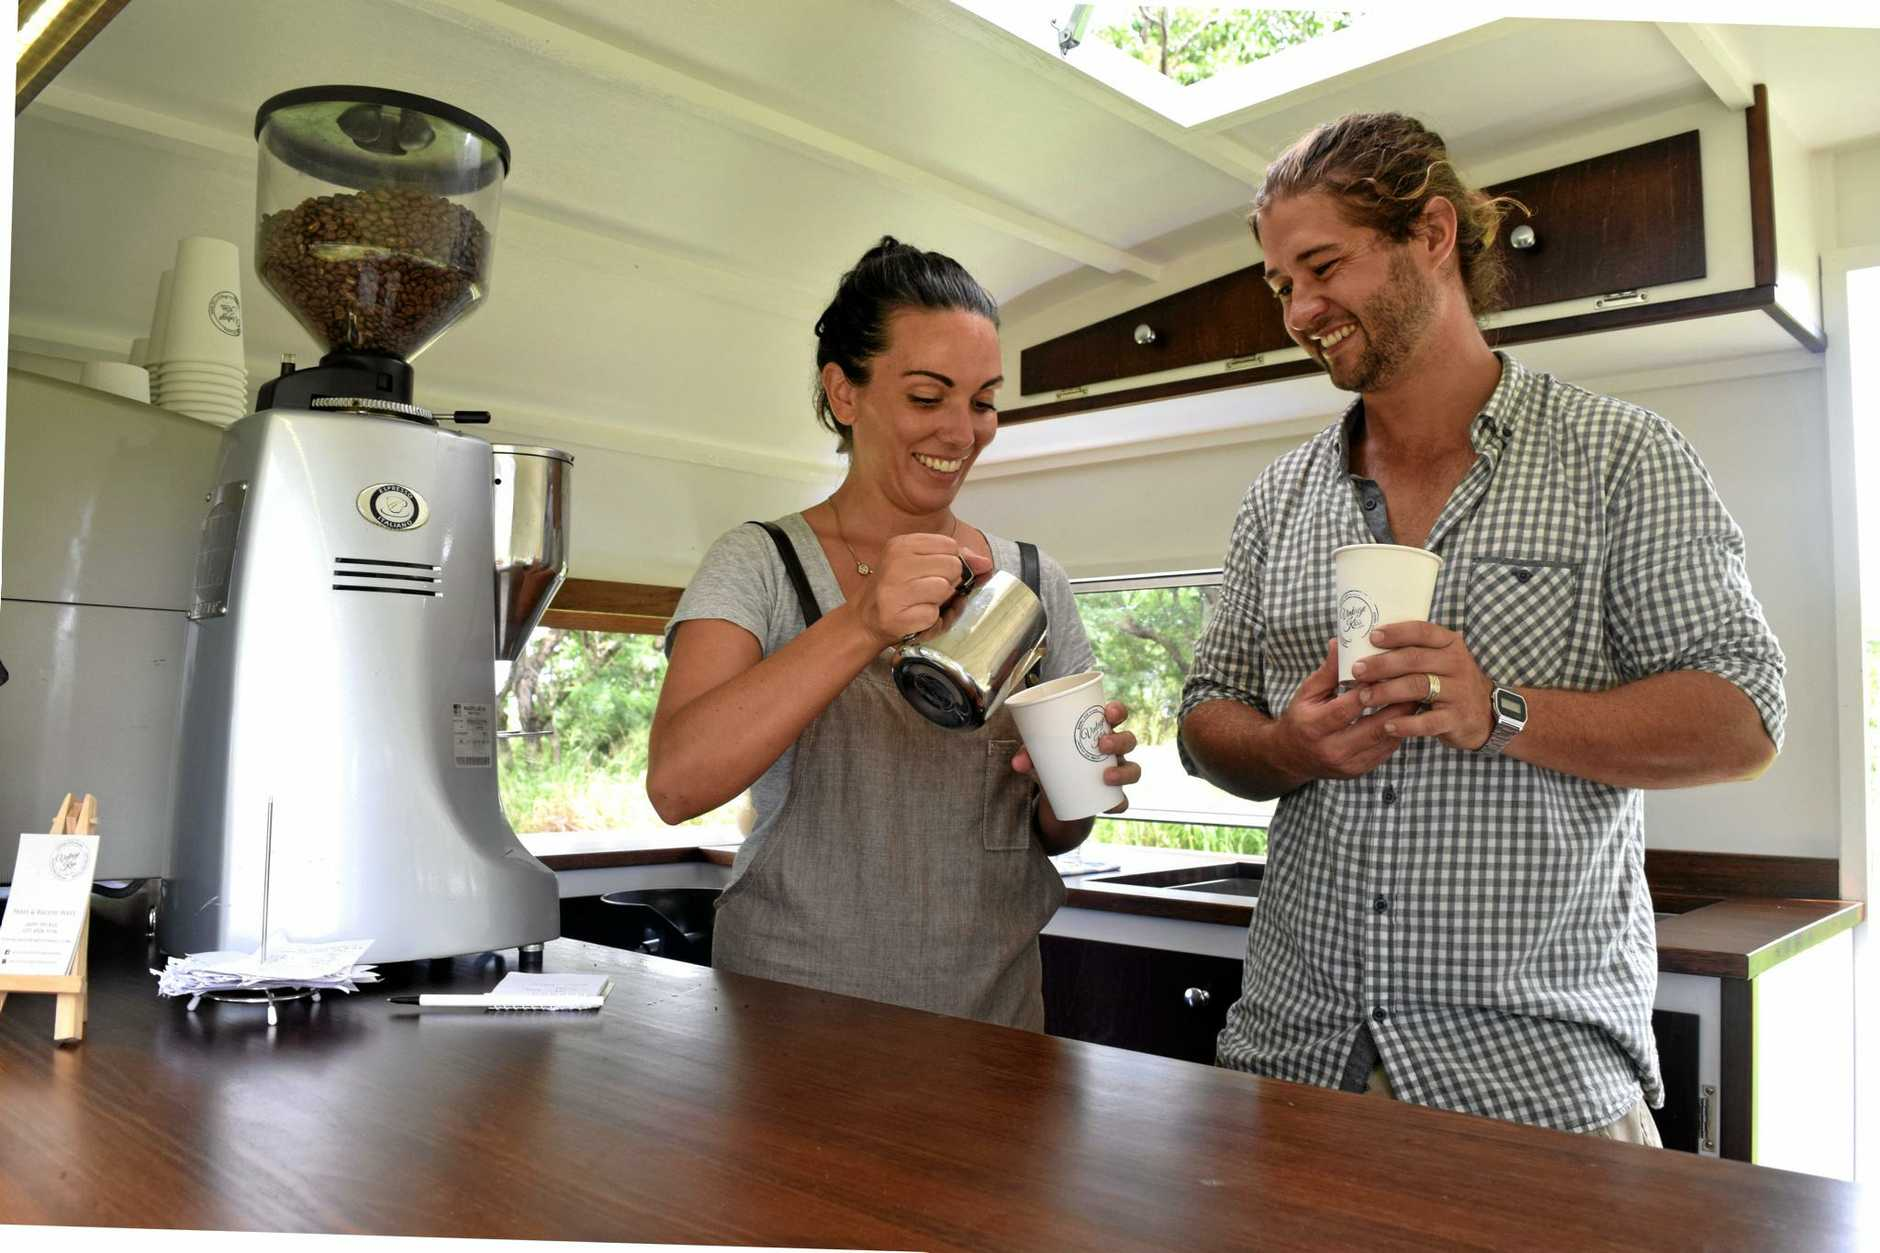 Paris and Brodie West have already ground through six kilograms of coffee beans, on their second day on the job.